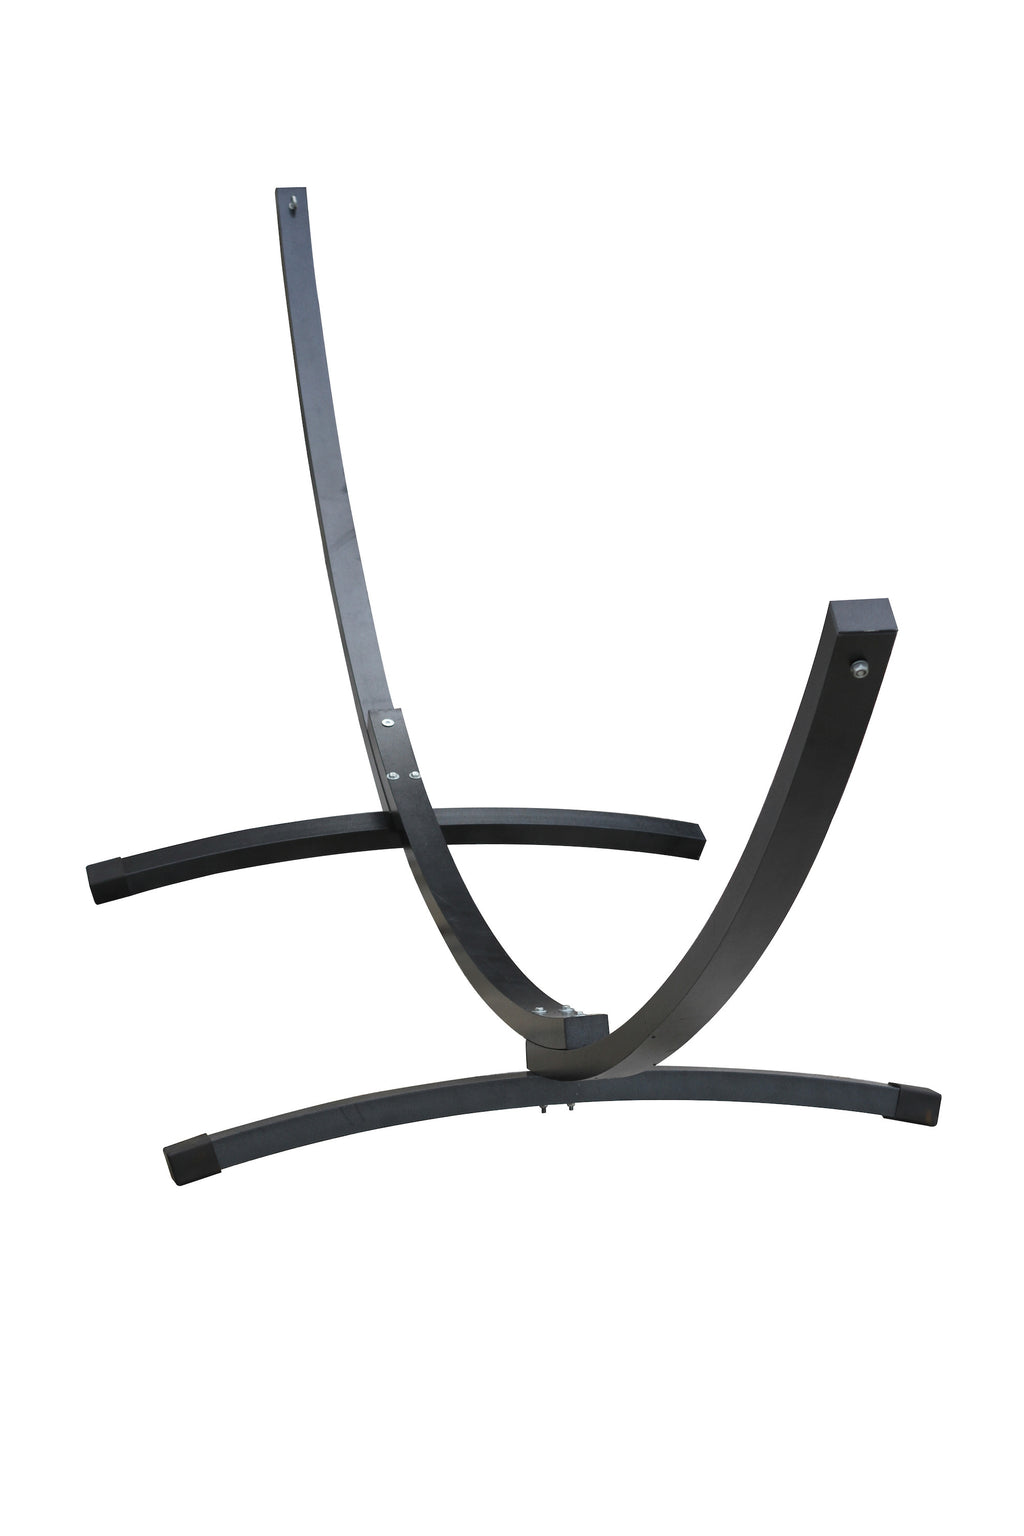 15 foot Arc Hammock Stand - Aluminum (Oil Rubbed Bronze)